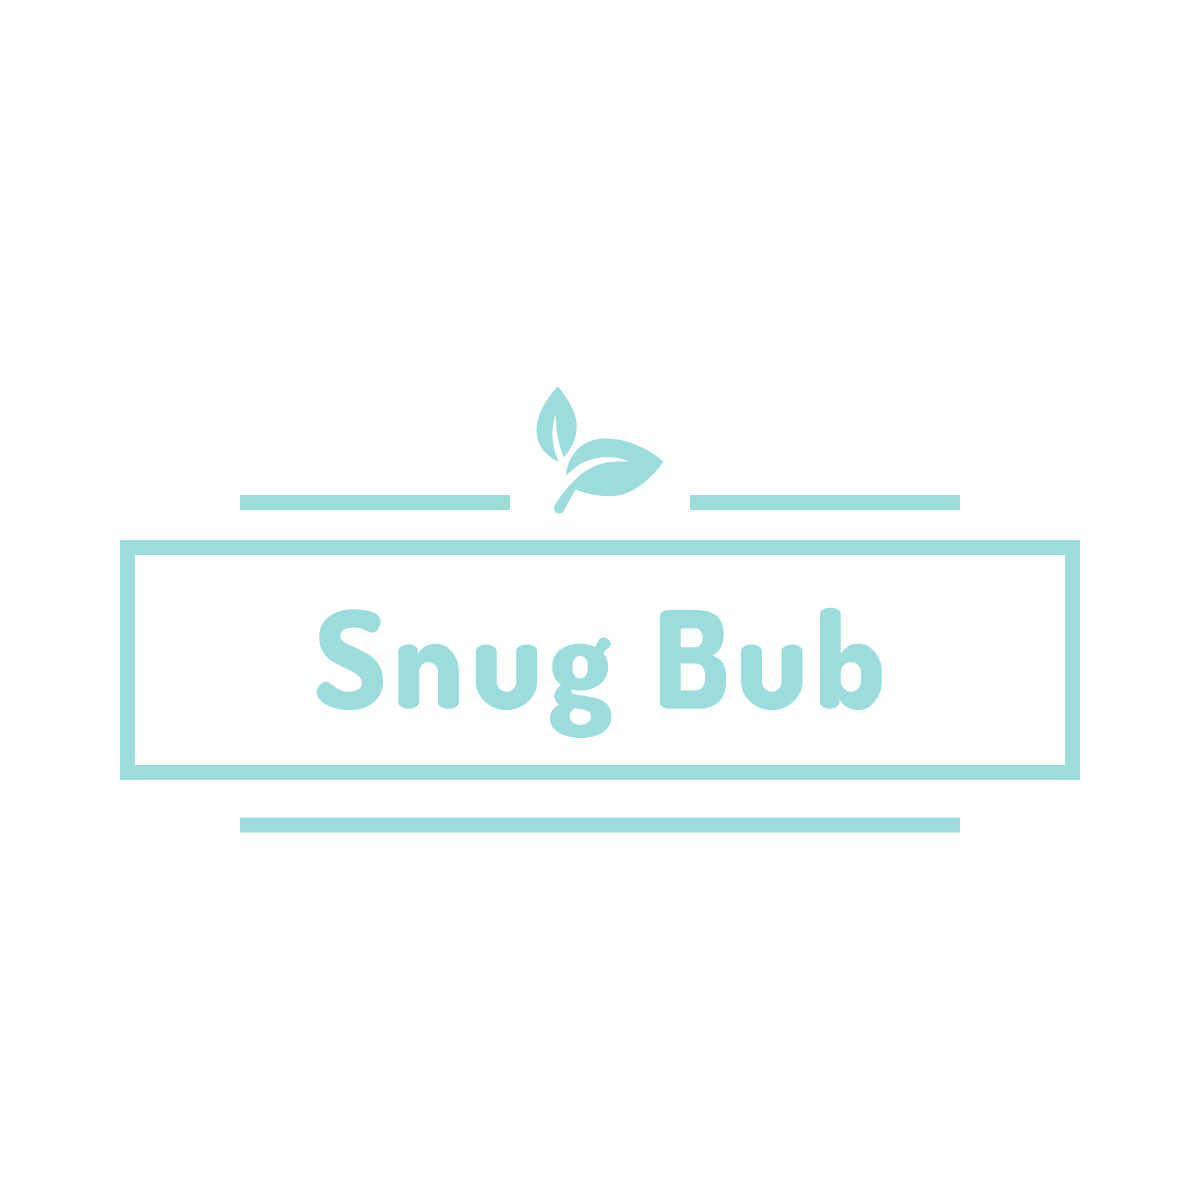 Snug Bub USA